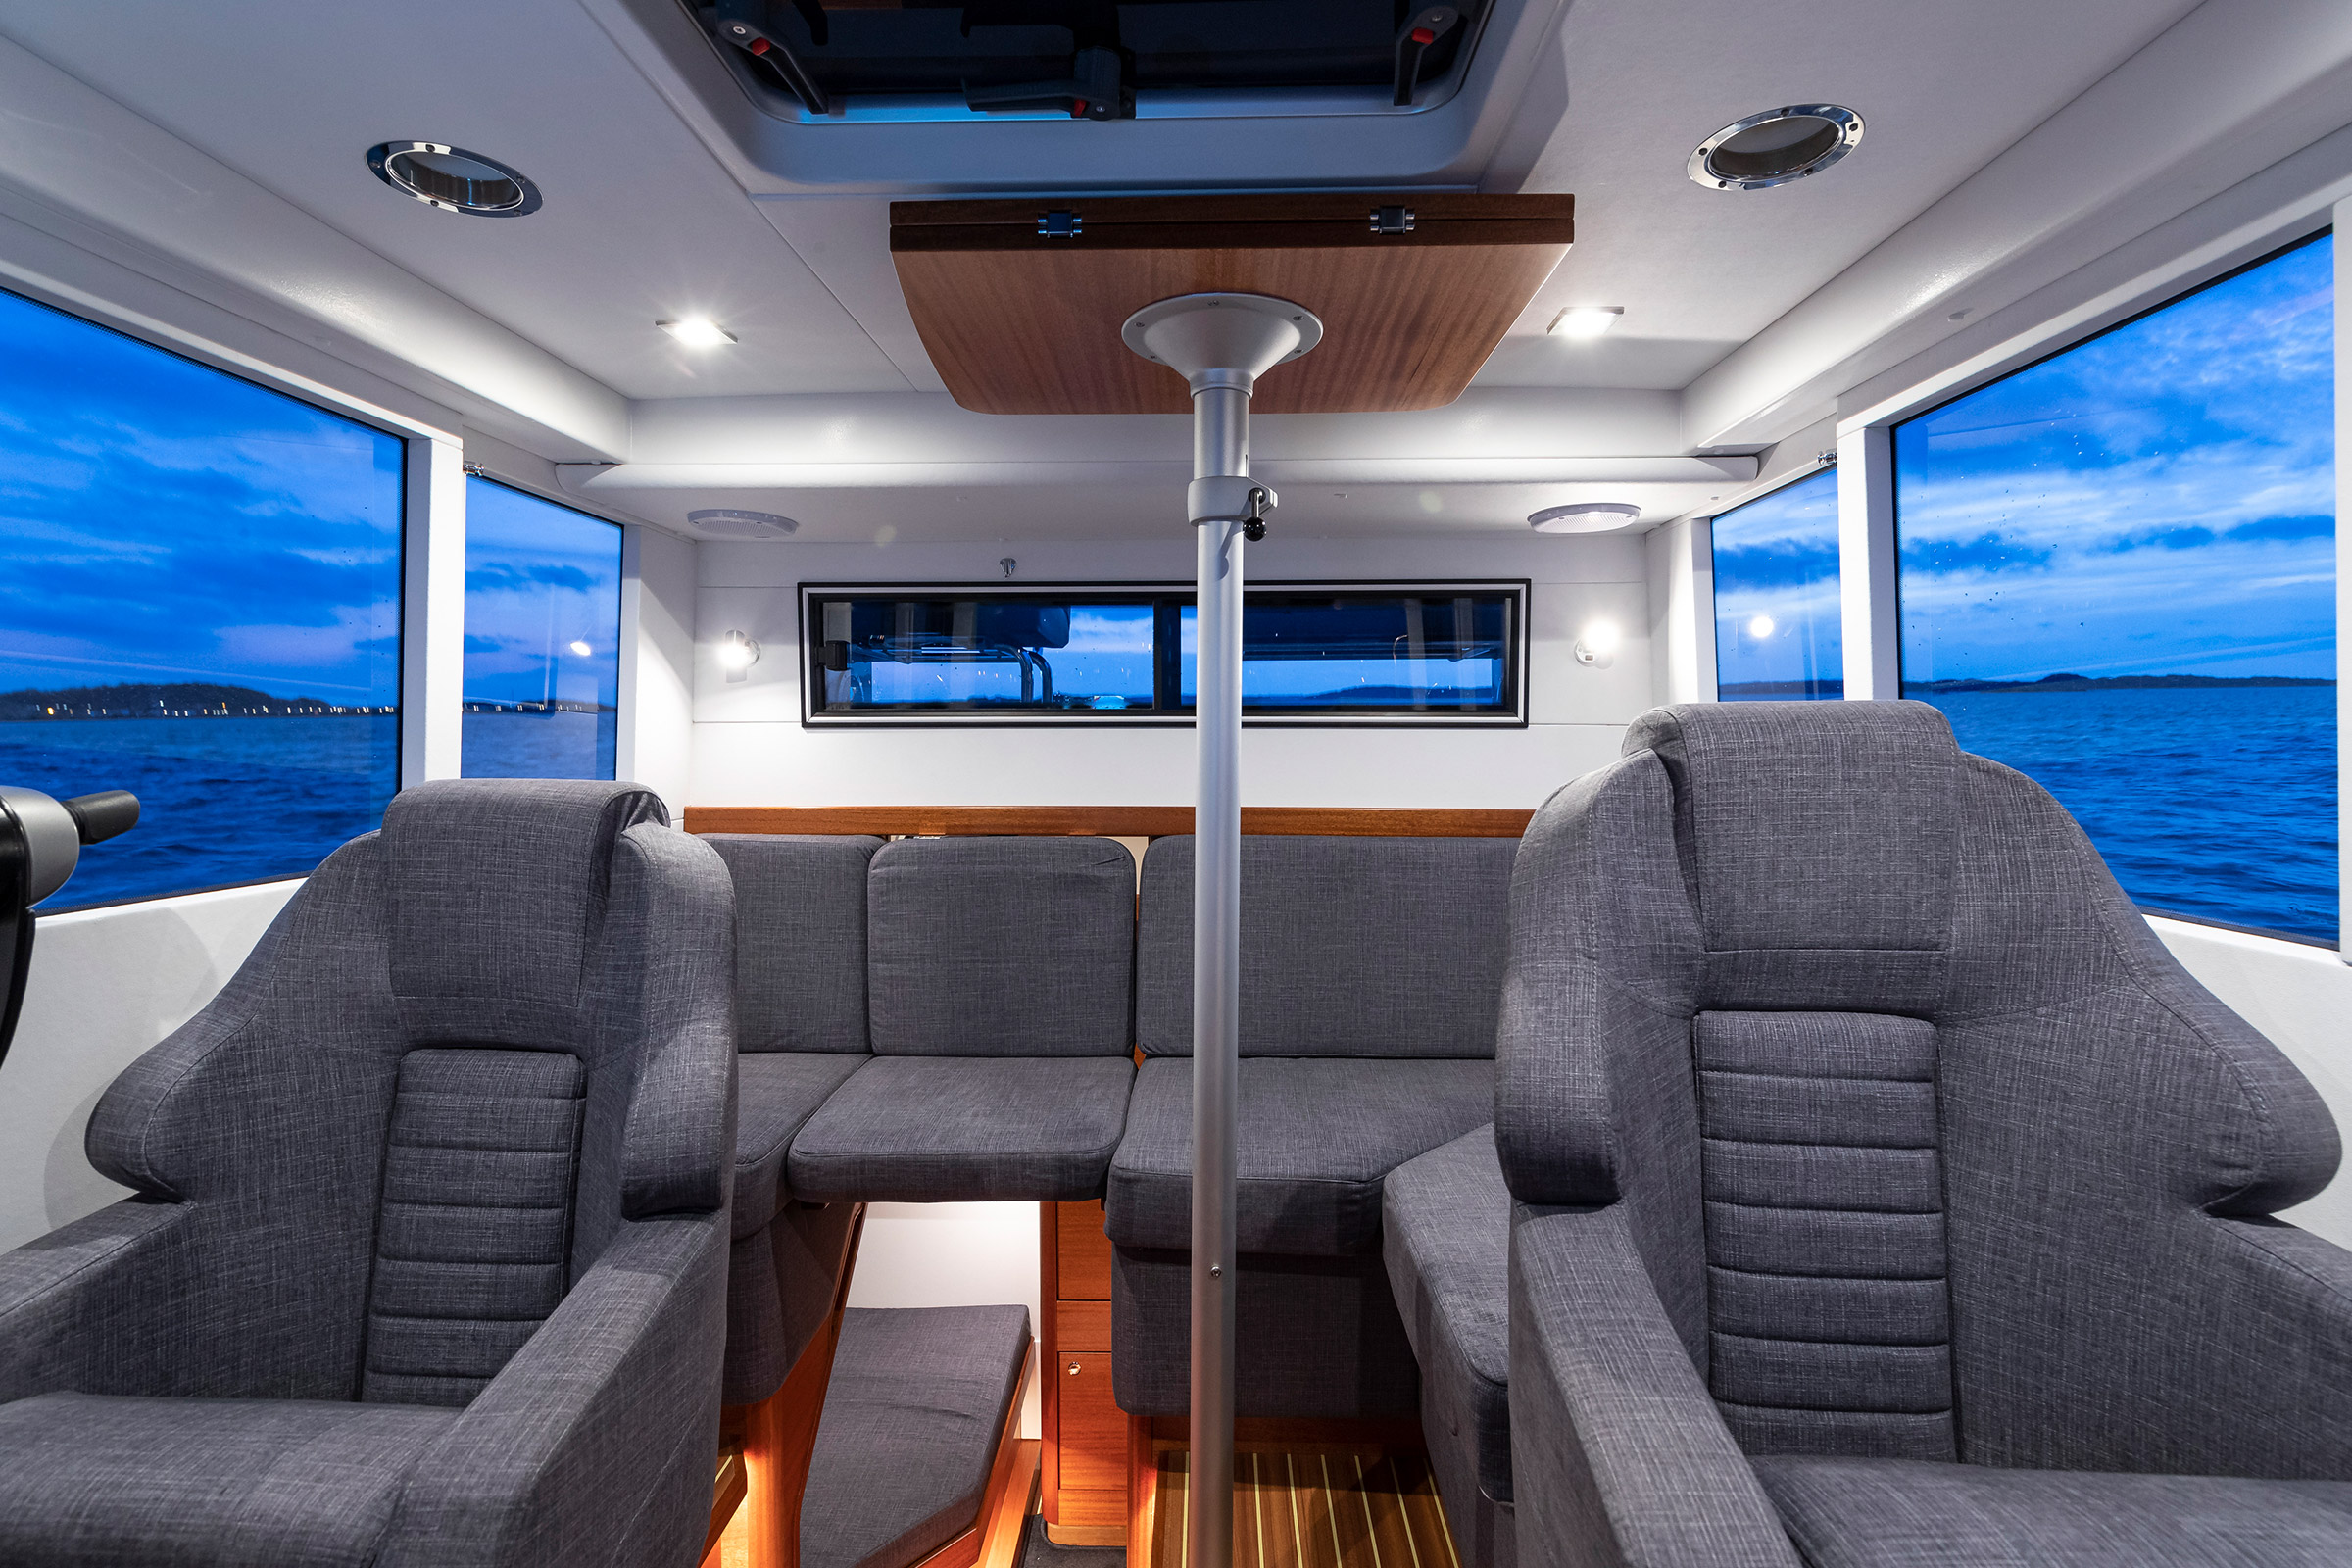 Inside a Paragon 31 Flybridge, 2 chairs and 1 sofa